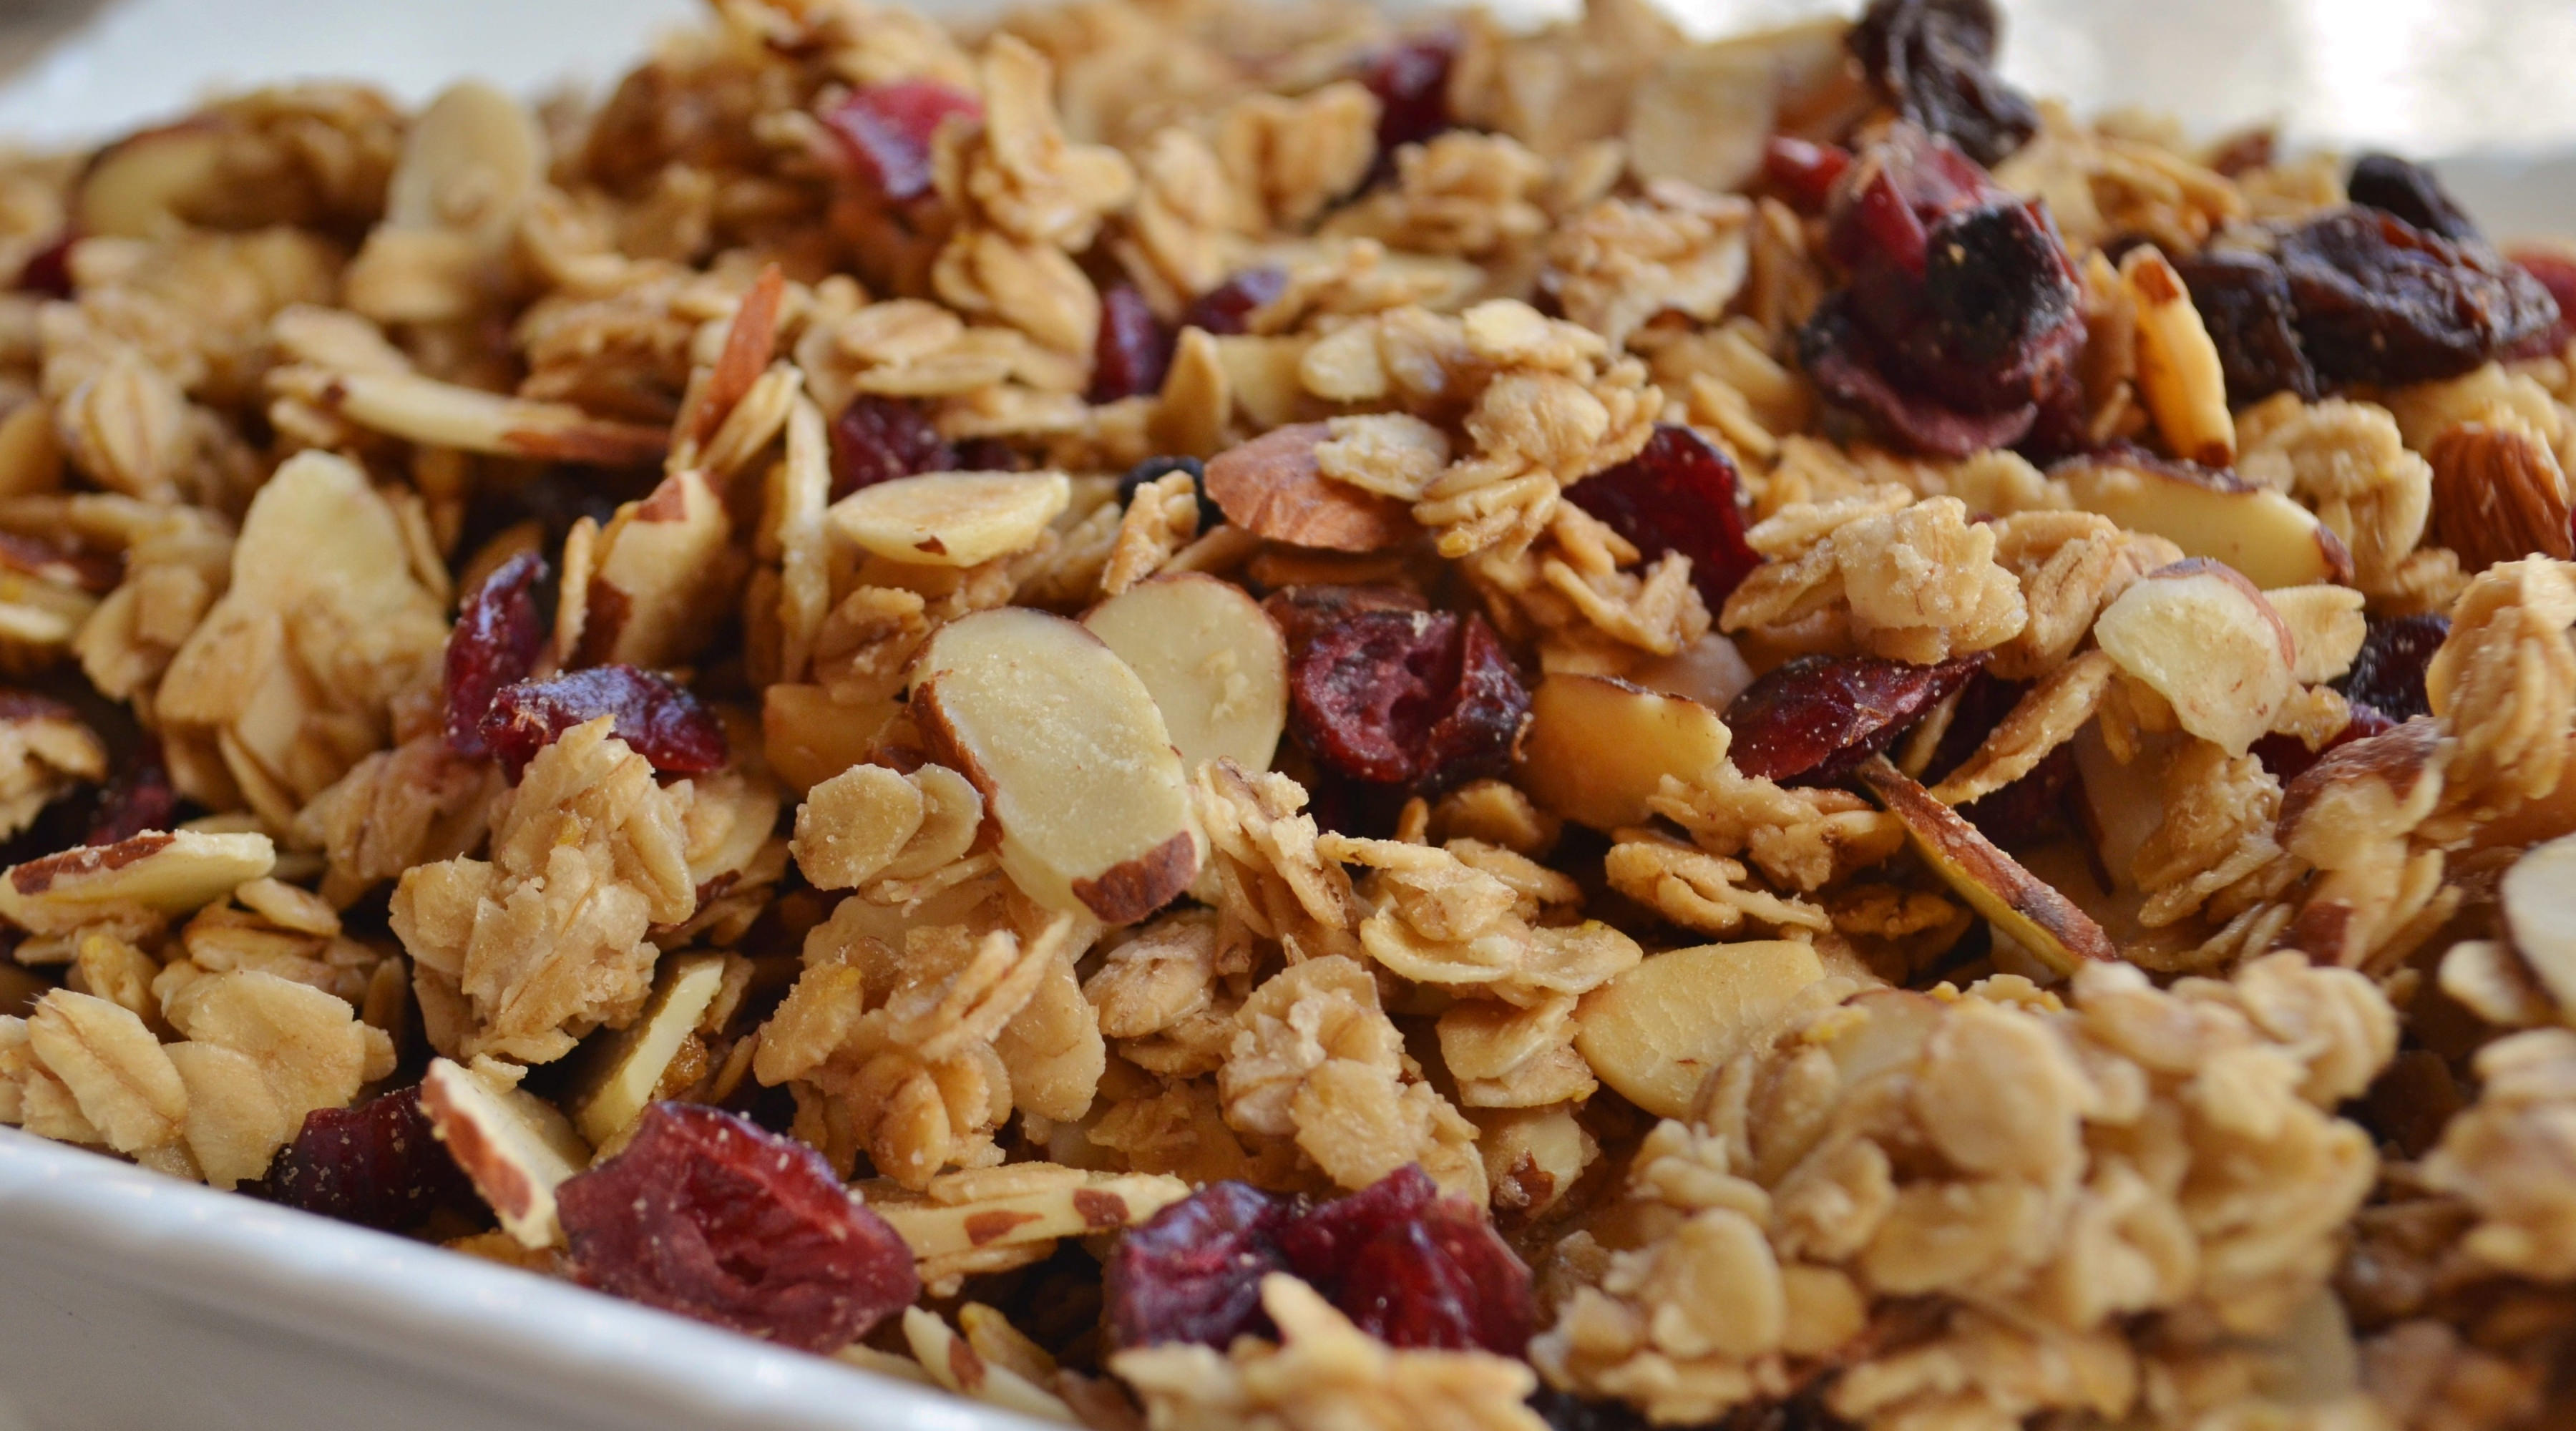 Yummy Granola Up Close